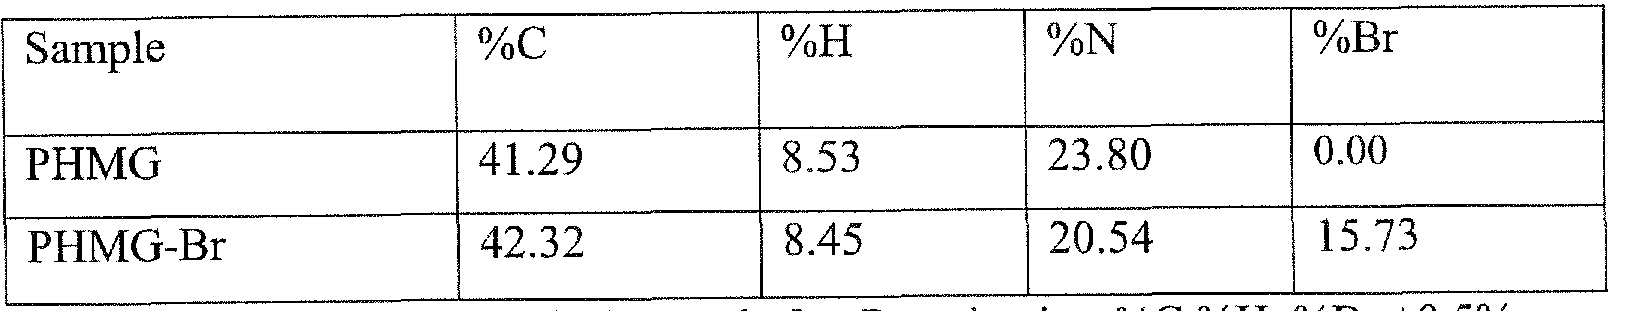 WO2017060485A1 - Controlled release n-halamine polymers for